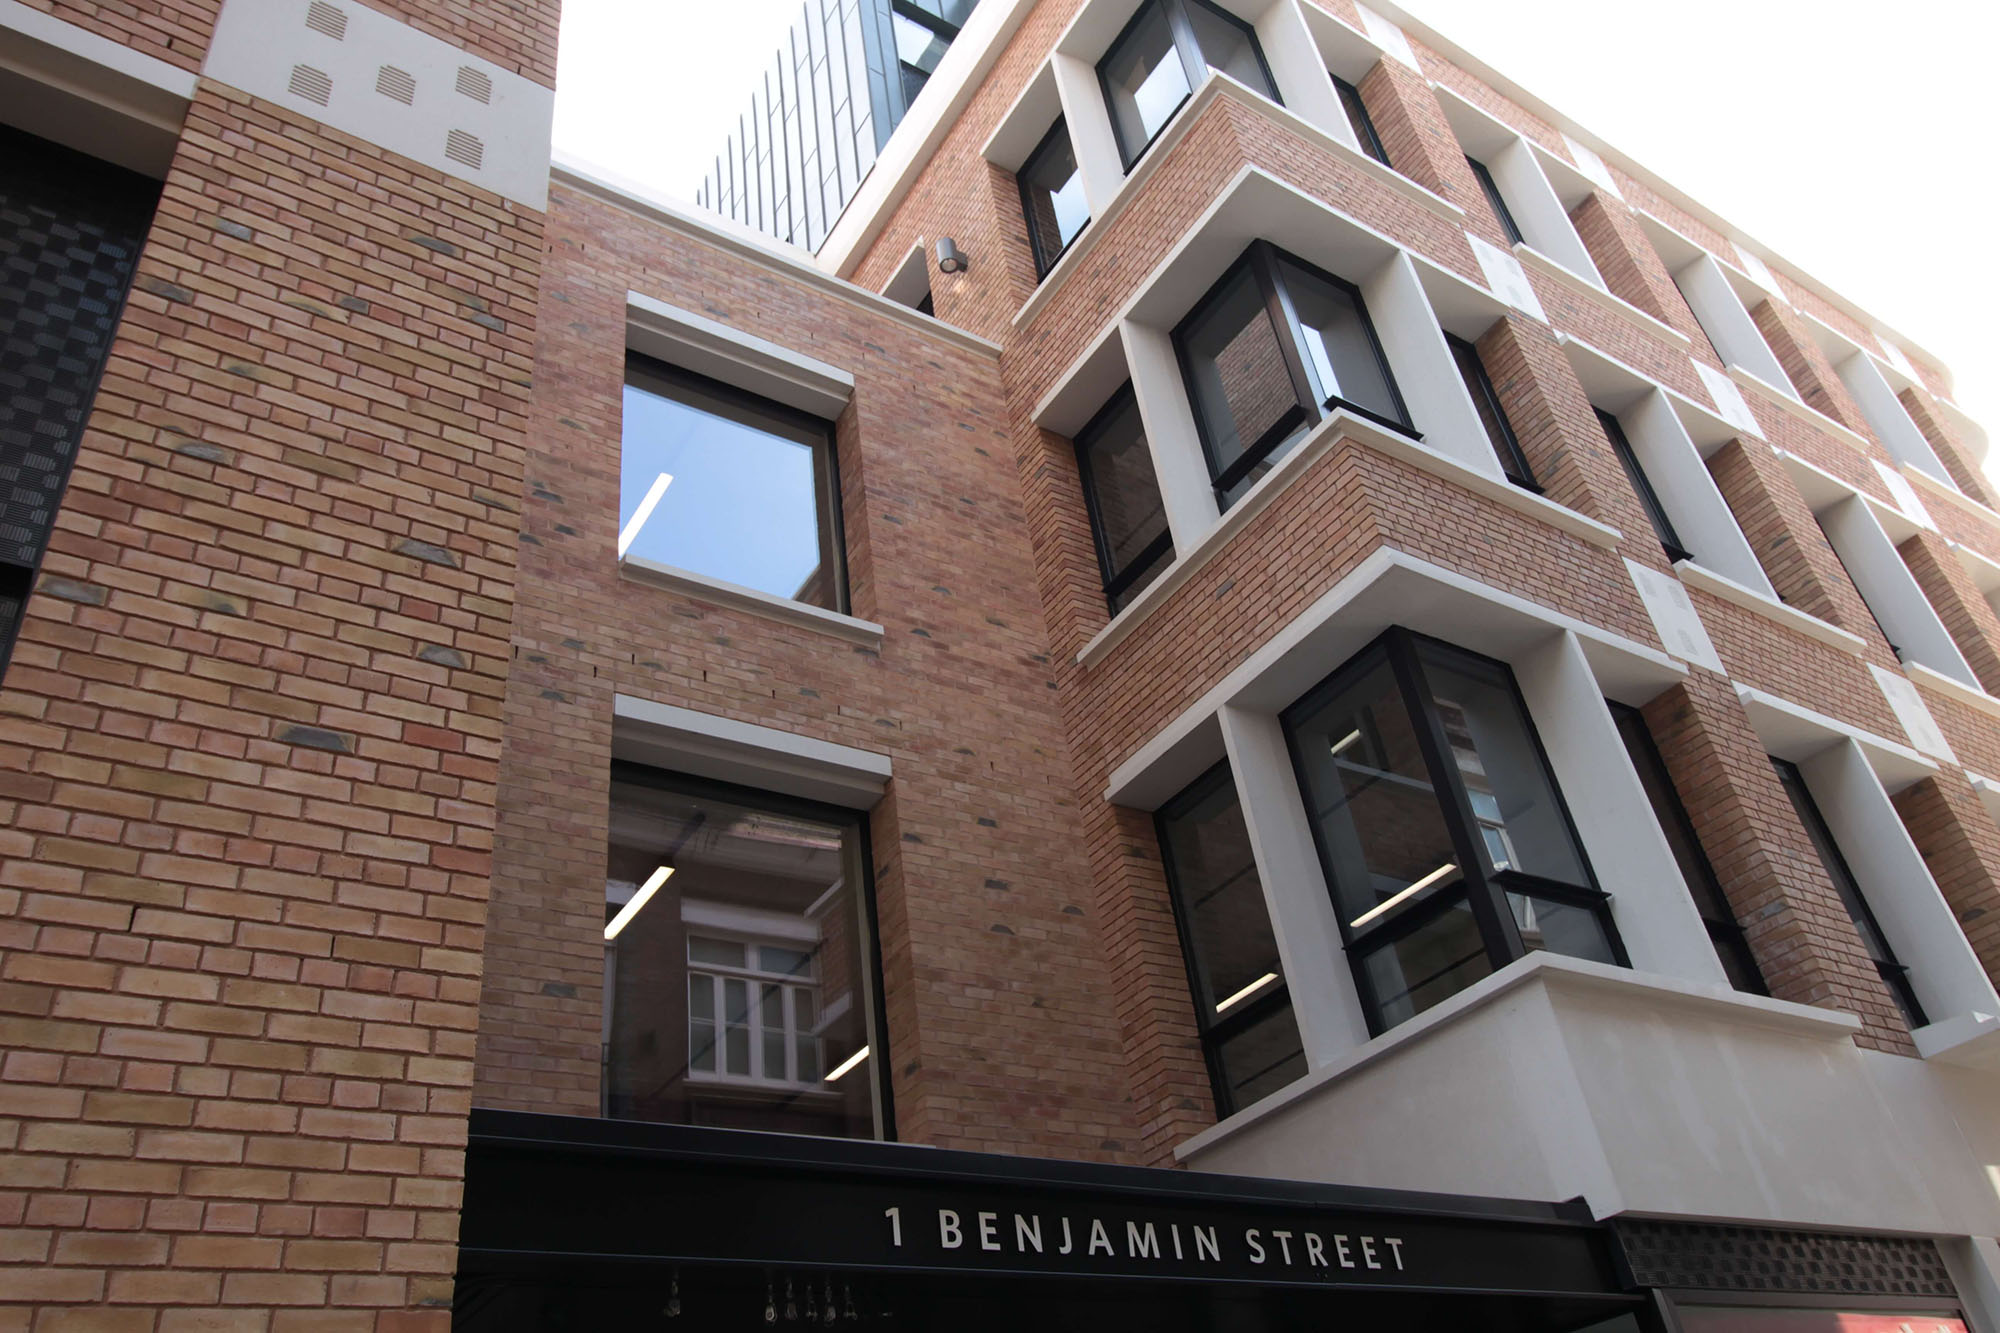 Benjamin Street New Build